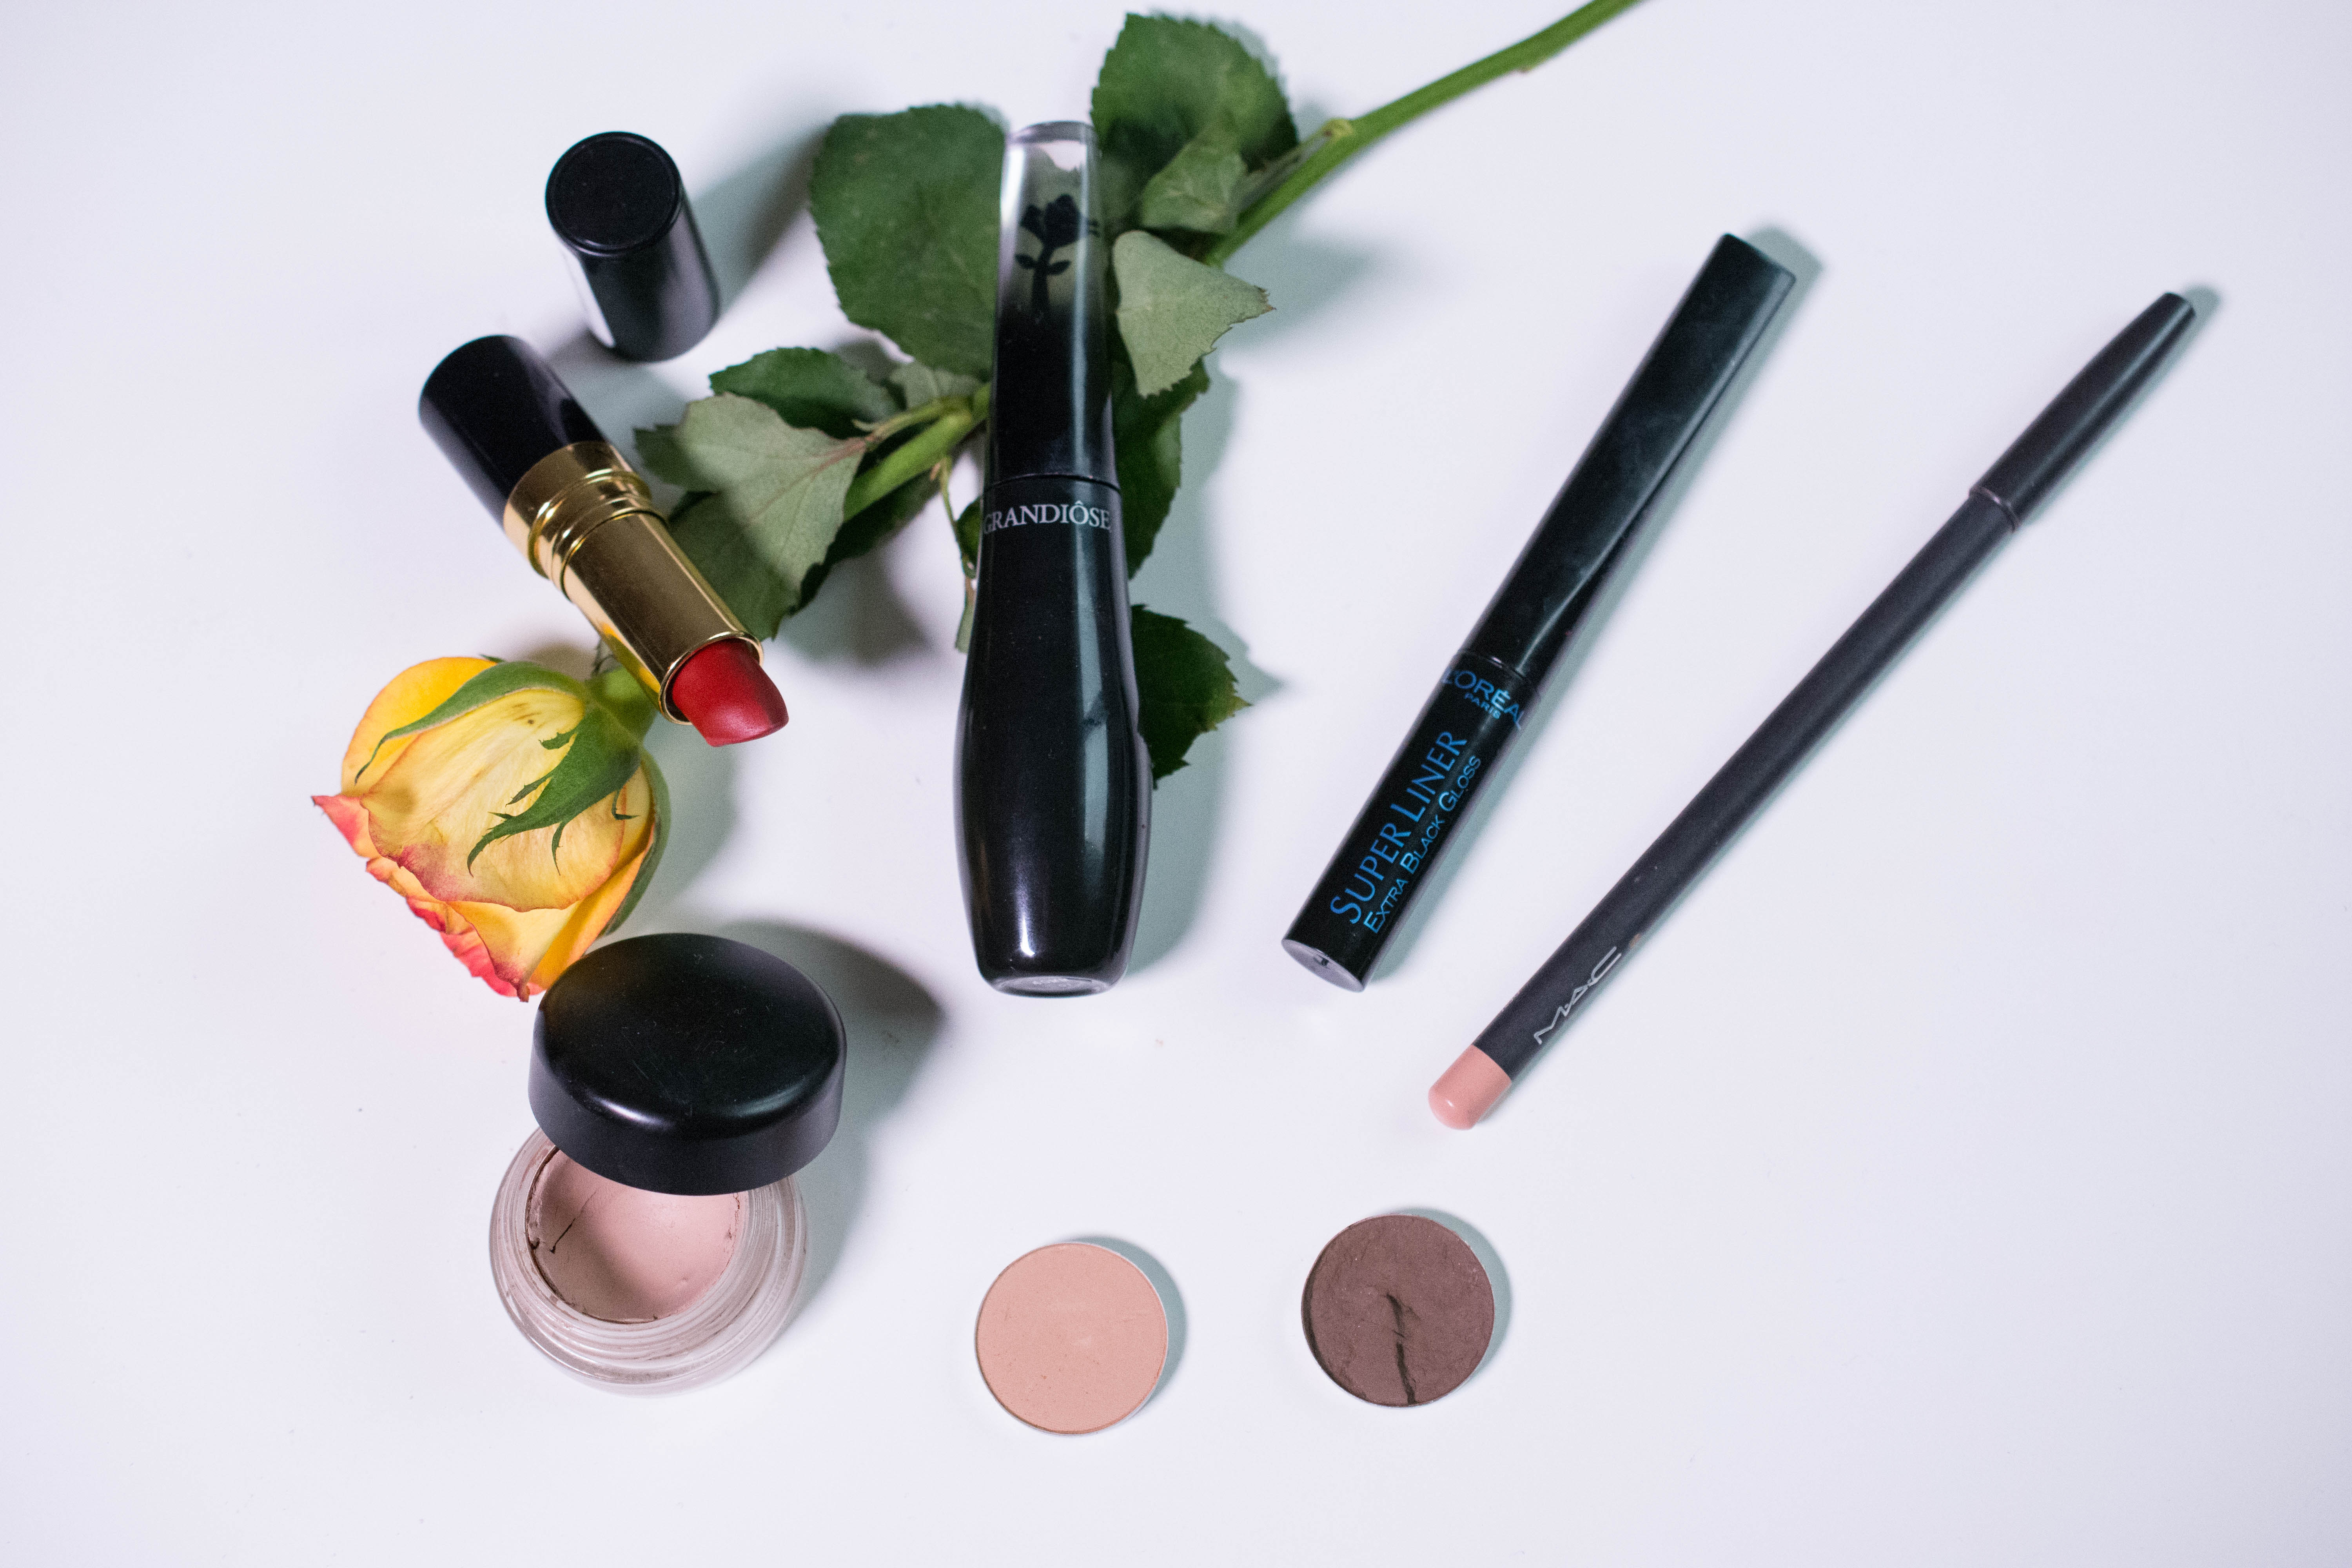 Products used on eyes and lips